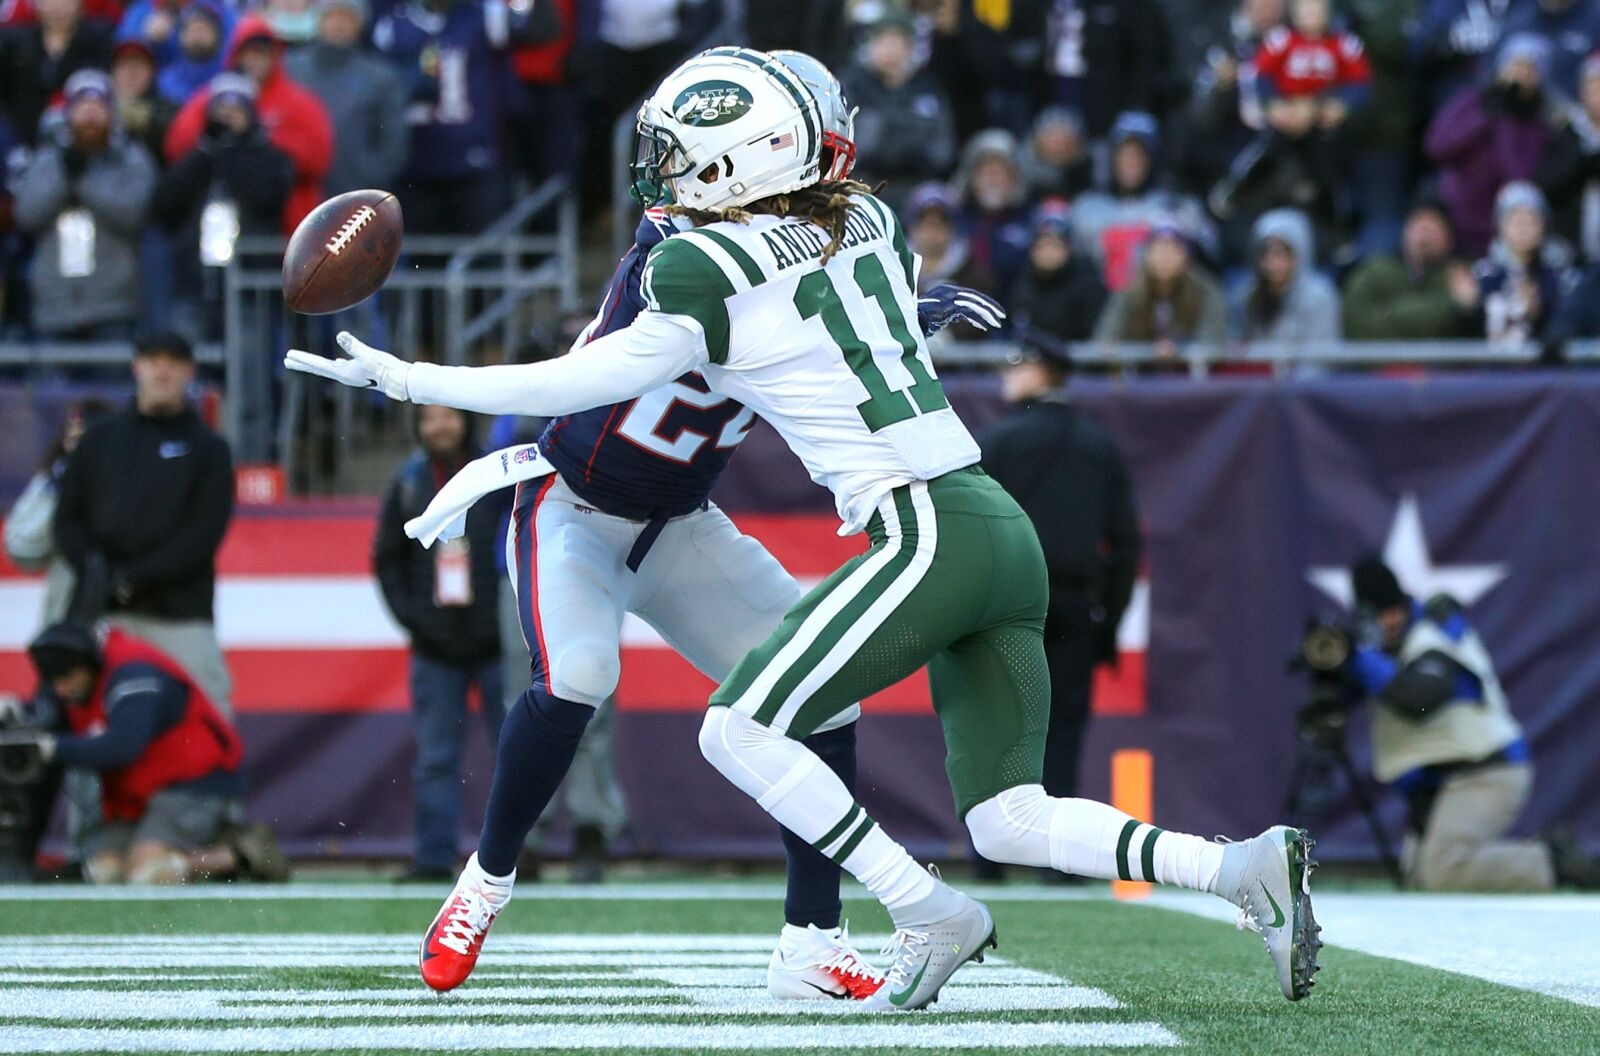 New England Patriots vs. New York Jets live stream: How to watch online